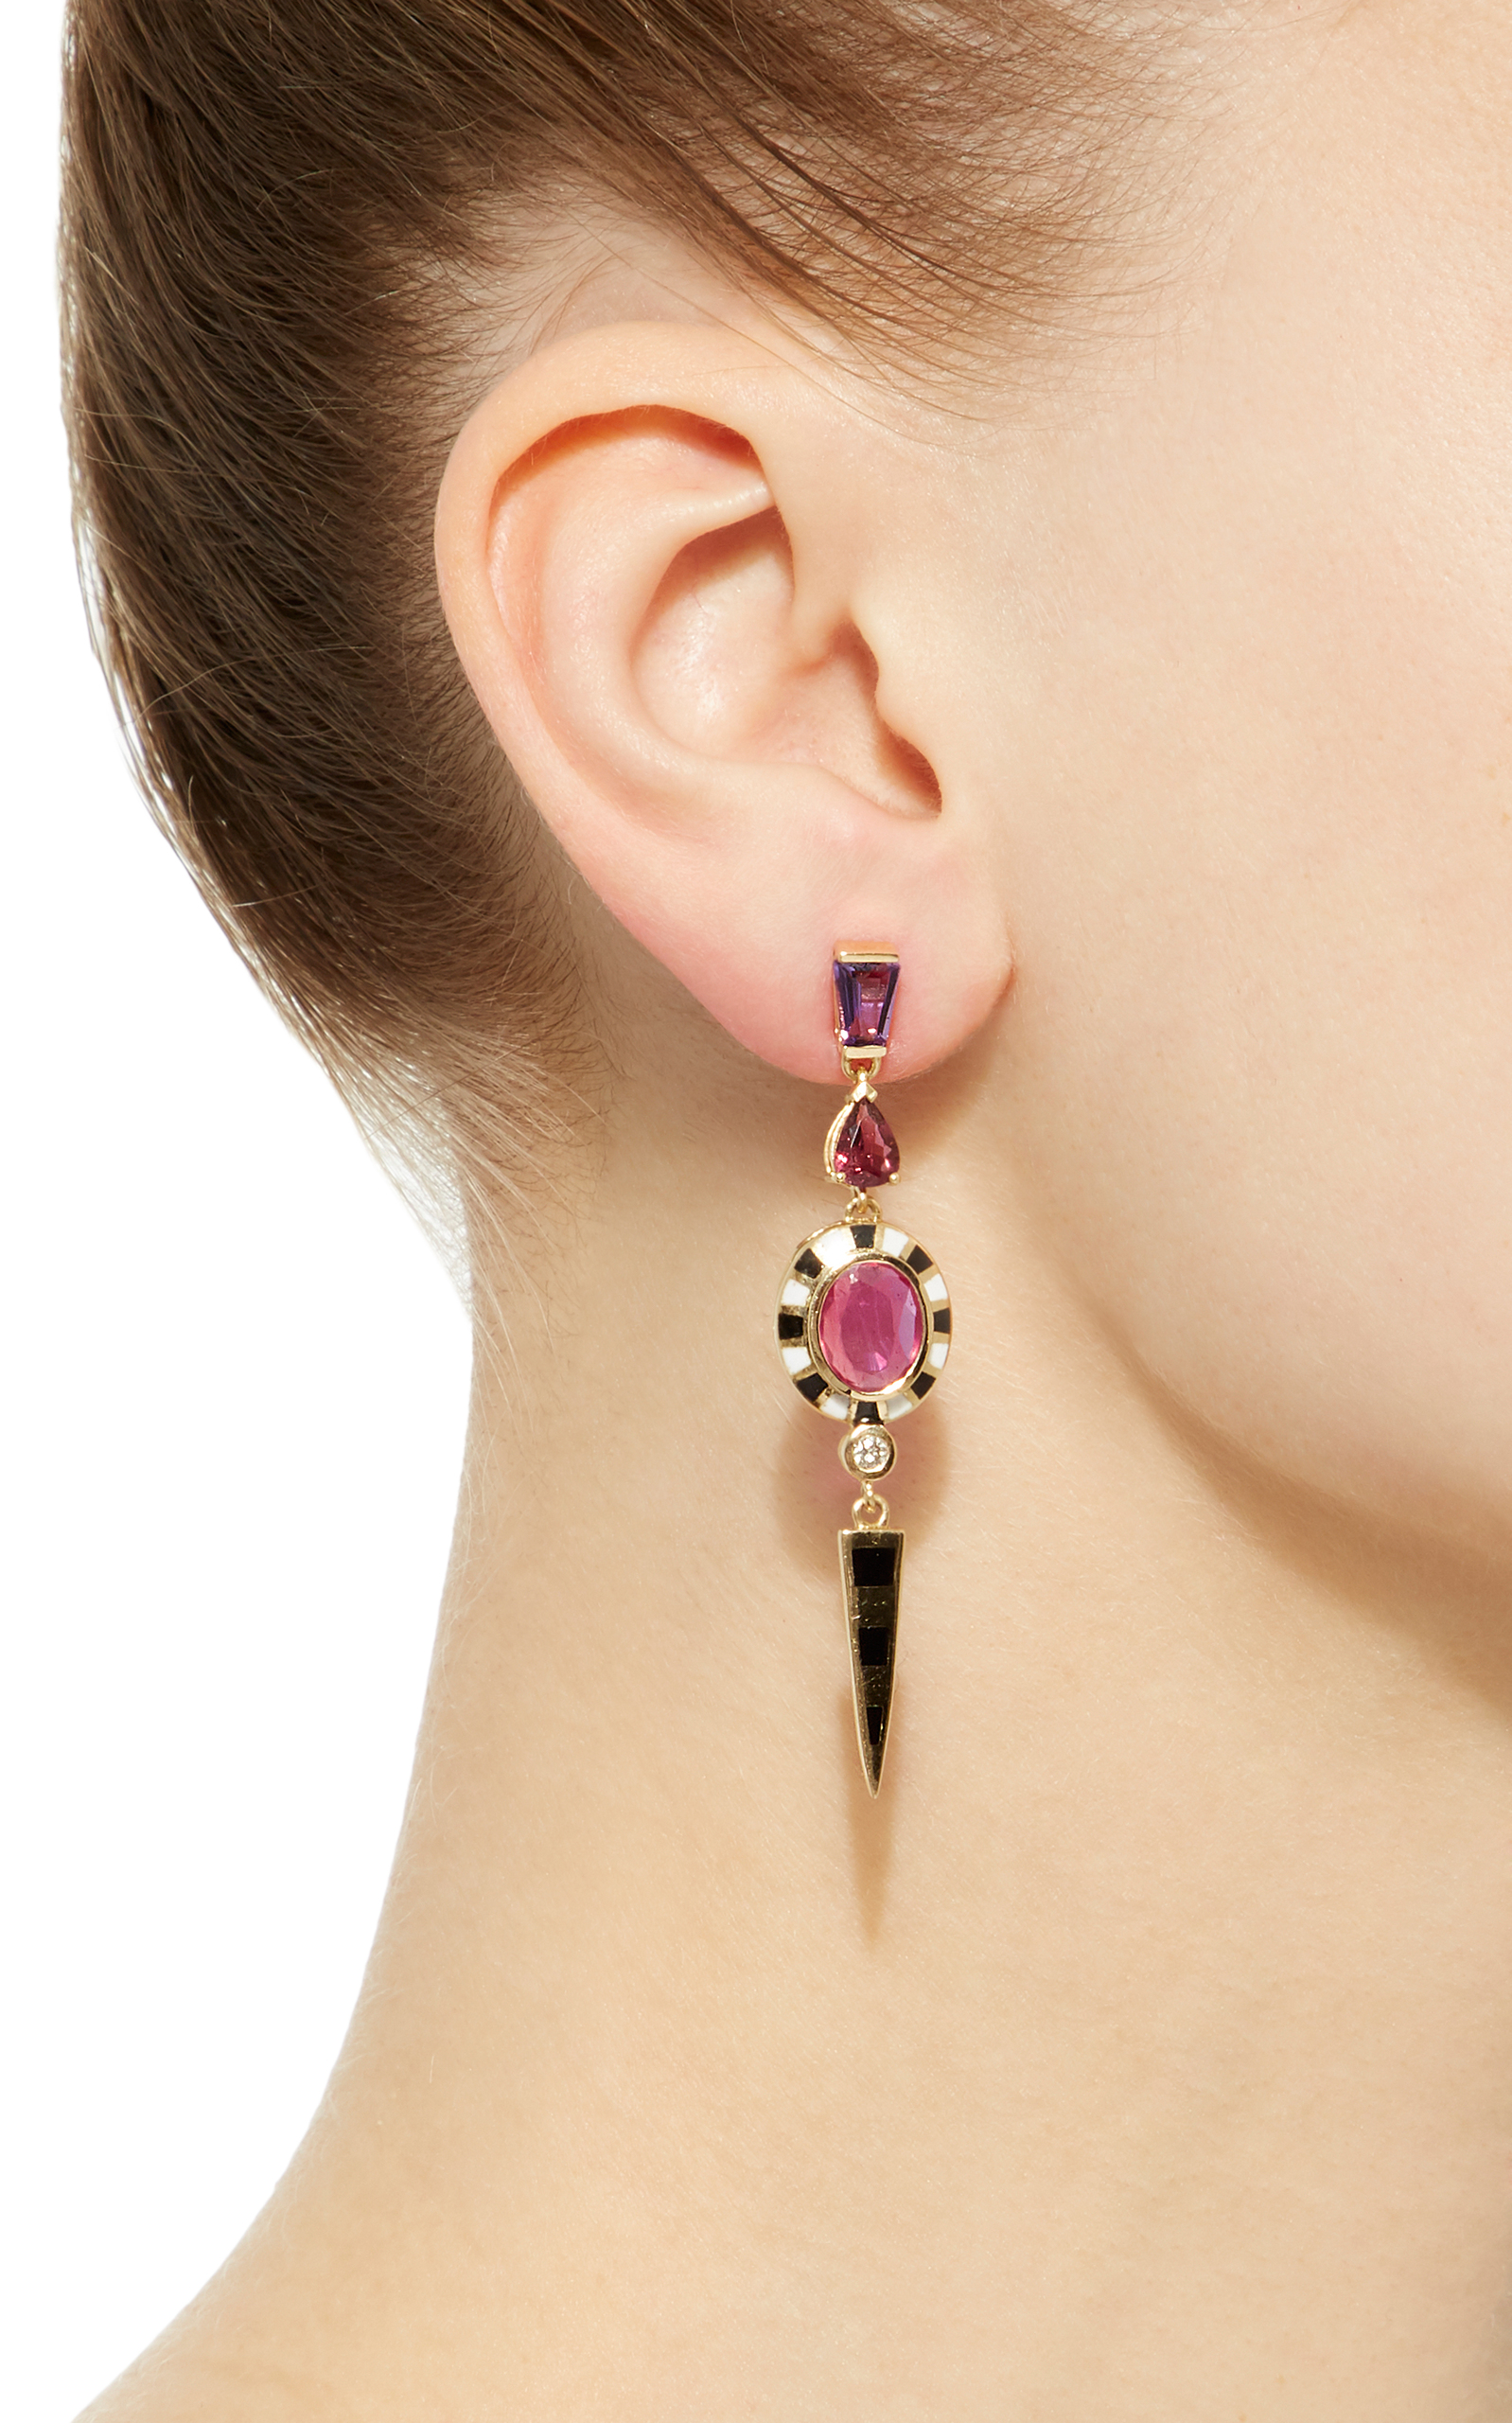 ear collections triangle cuff nichol curved knife single earring products earrings edge wendy